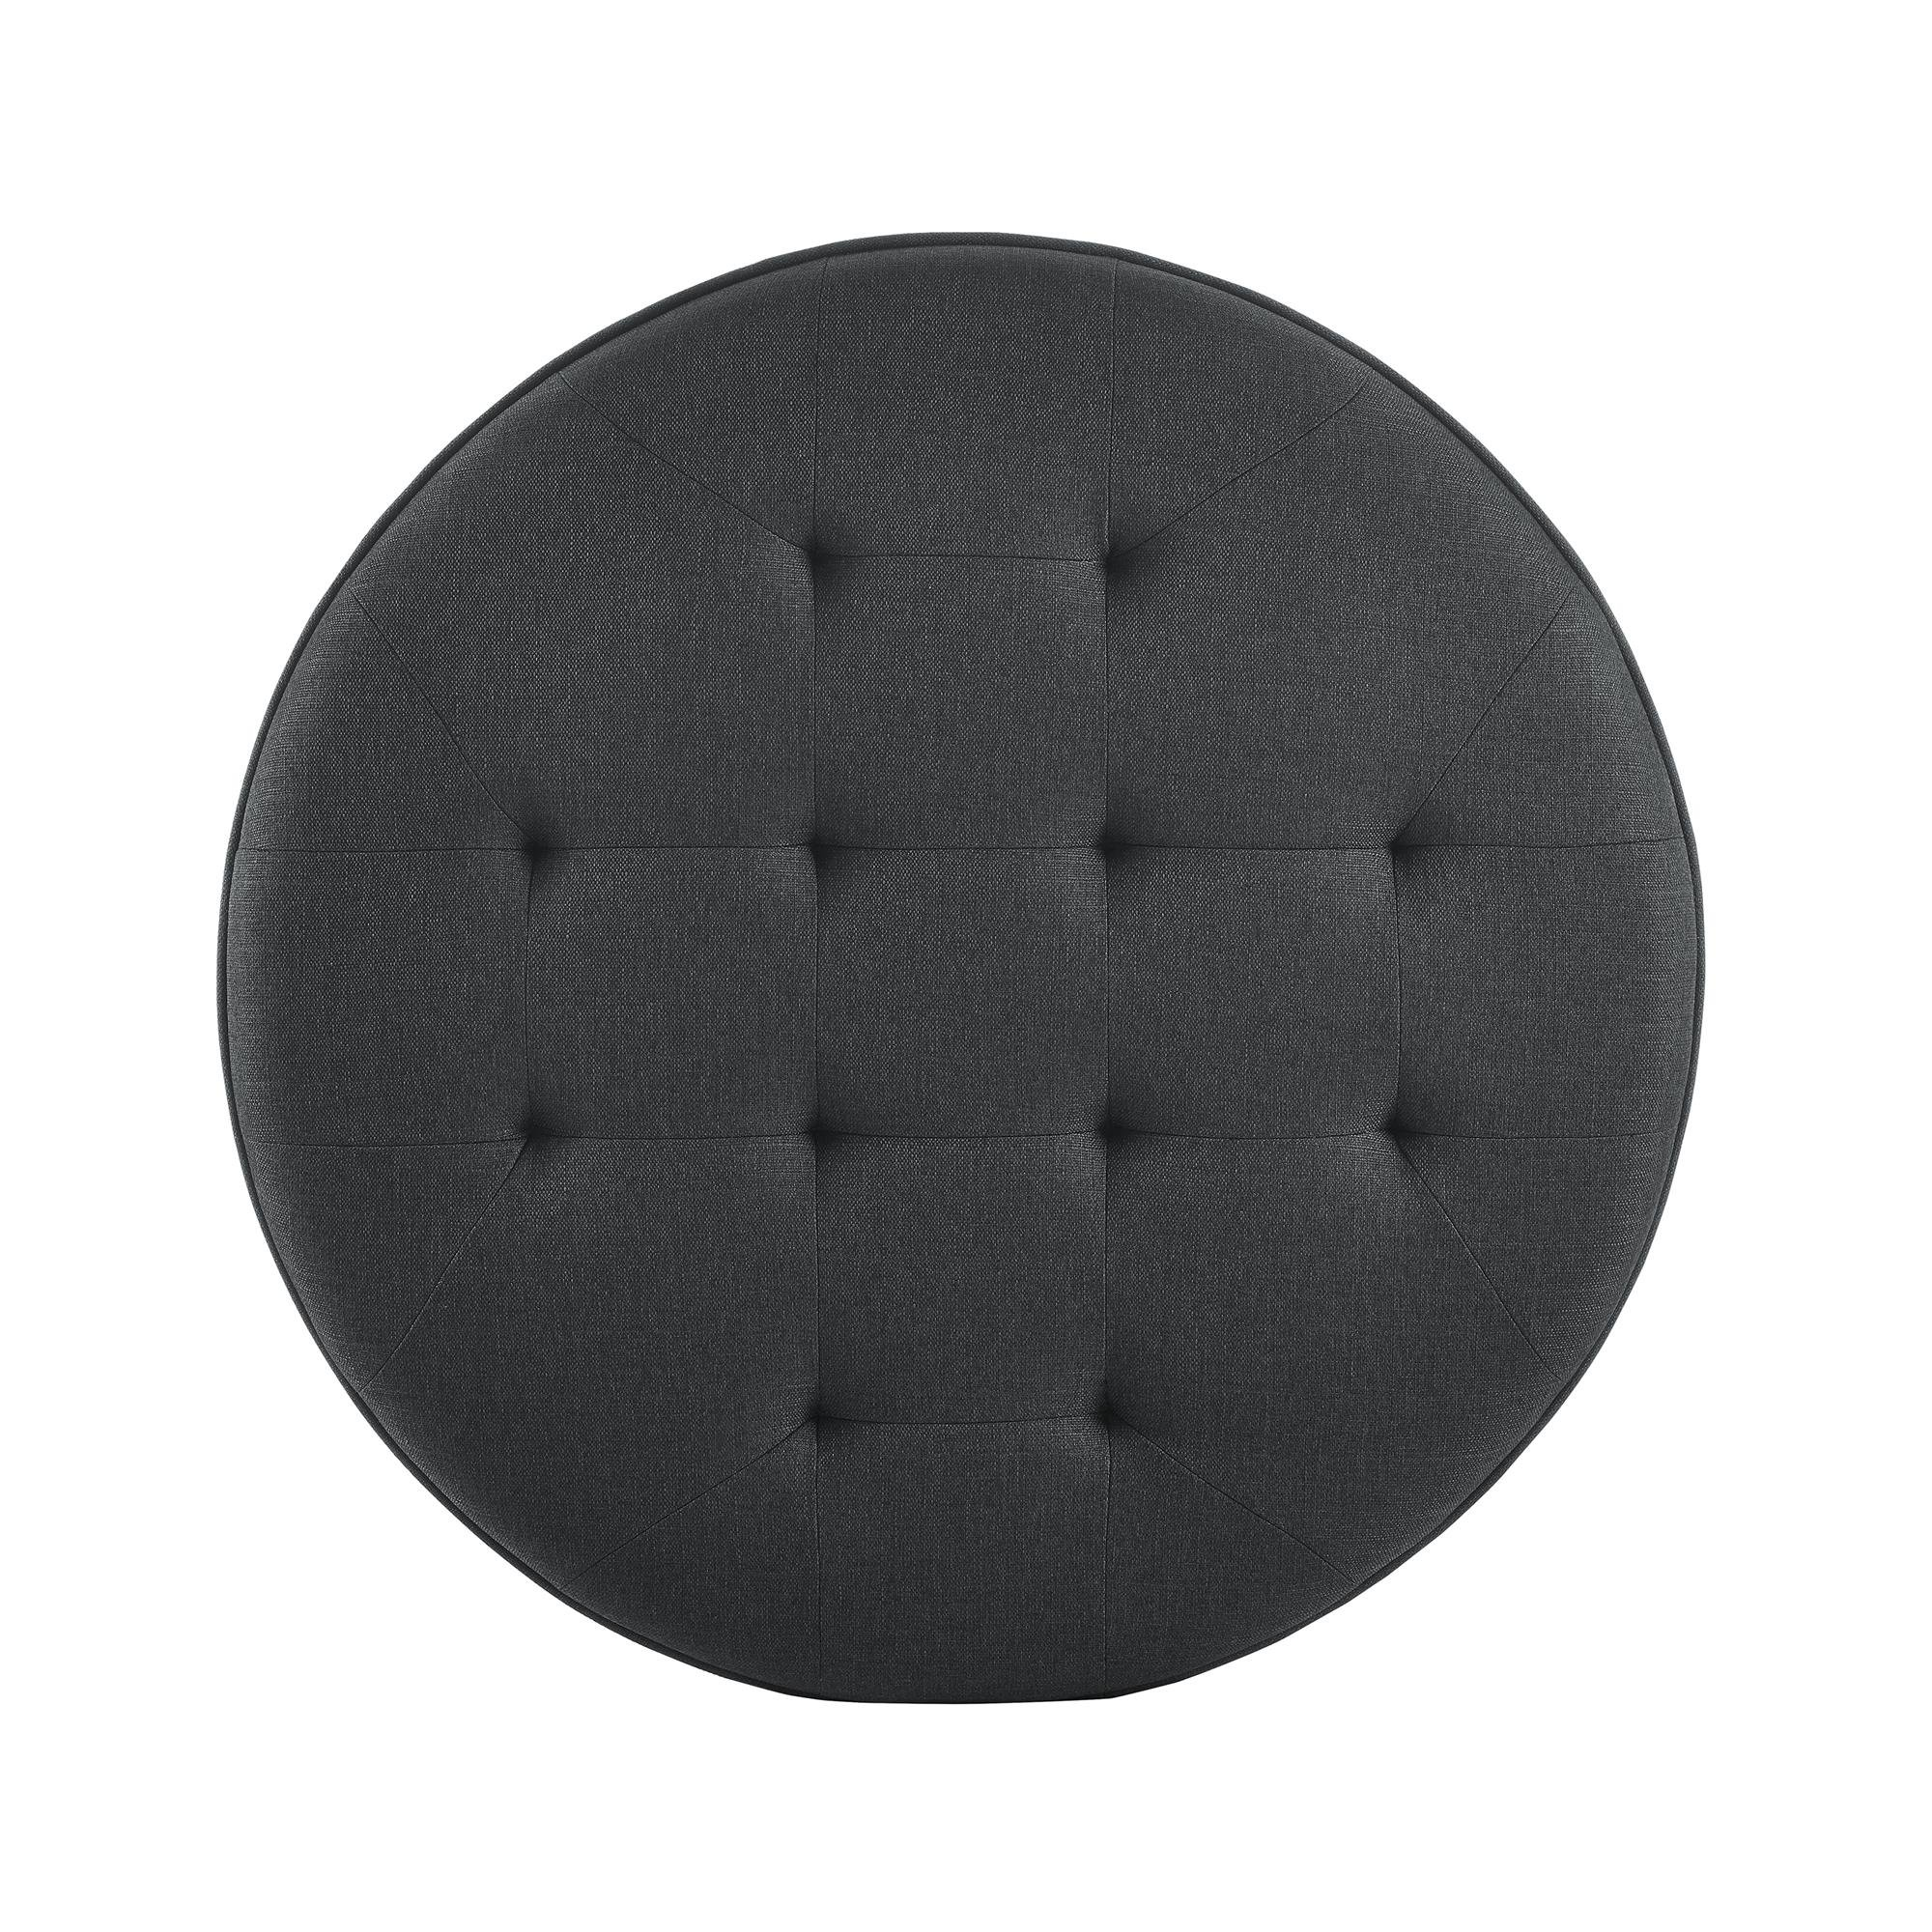 Dorel Living DL6993-CH Patty Round Ottoman, Charcoal by Dorel Living (Image #3)